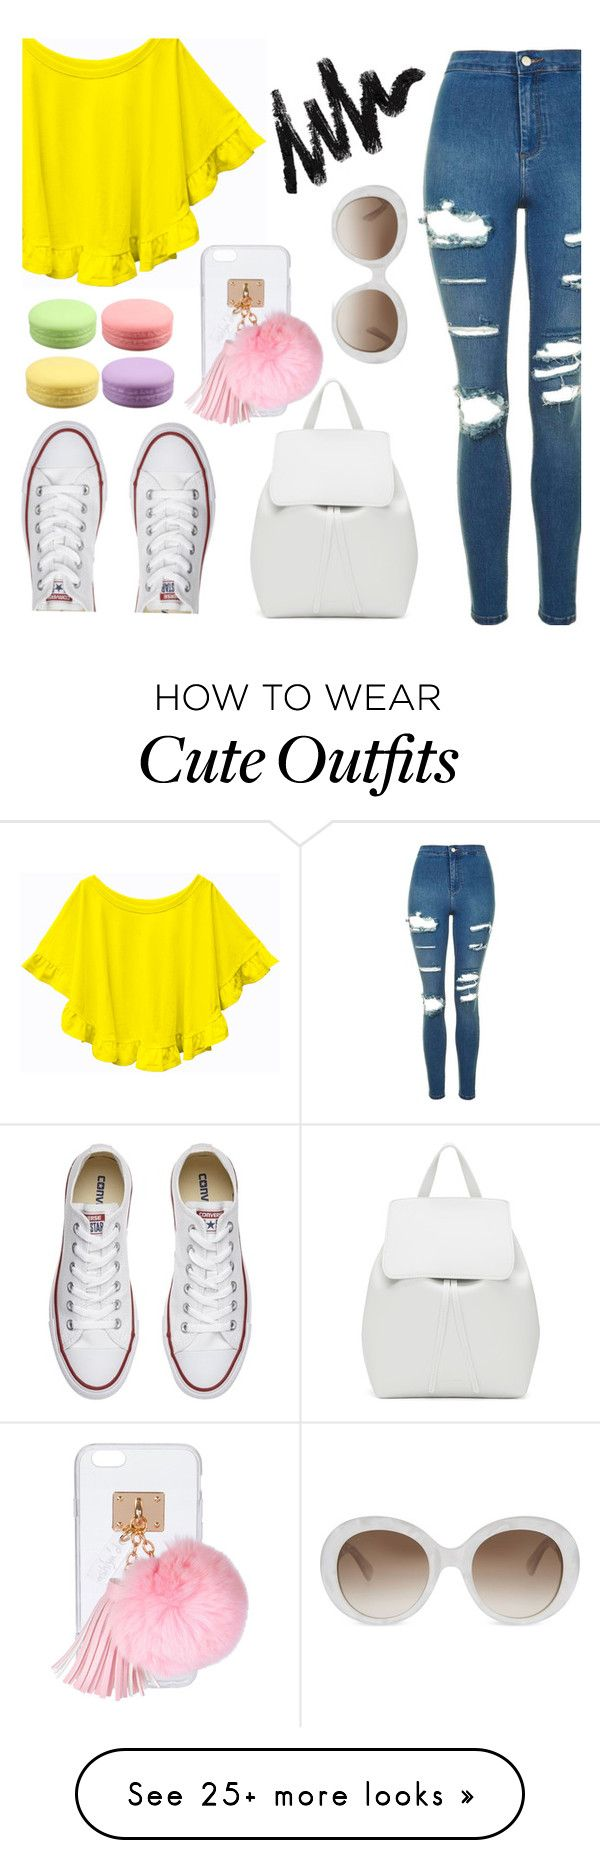 """School outfits"" by totalfashiongirl on Polyvore featuring Topshop, Converse, Mansur Gavriel, Ashlyn'd and Gucci"